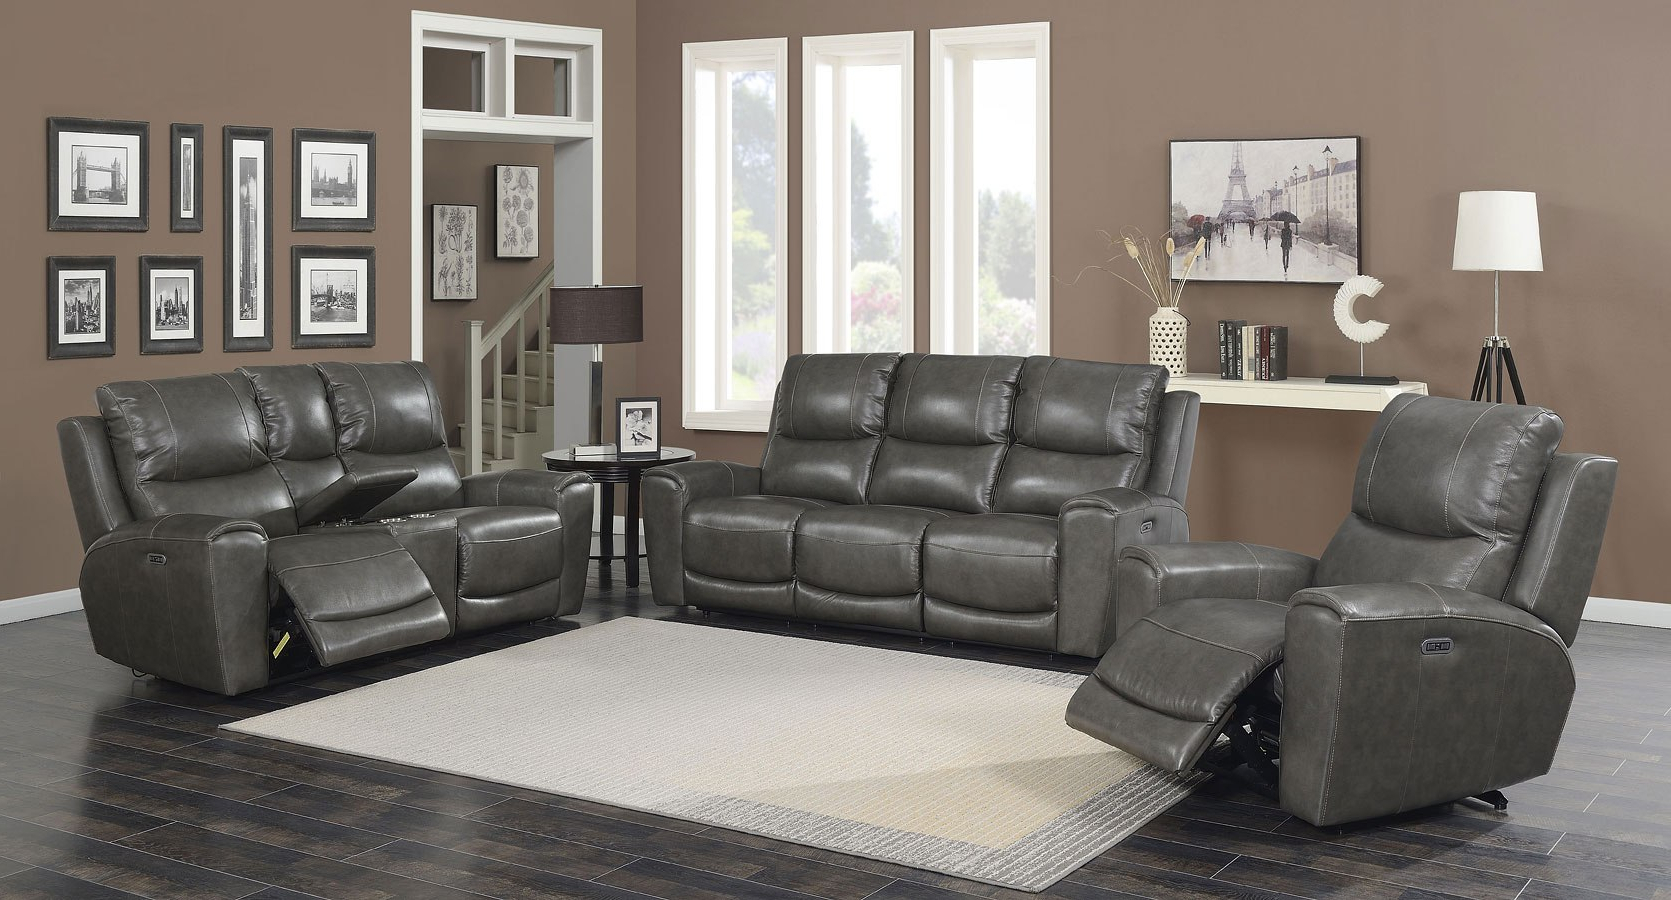 Widely Used Laurel Power Reclining Living Room Set (Grey) Steve Silver Throughout Laurel Gray Sofas (View 7 of 15)